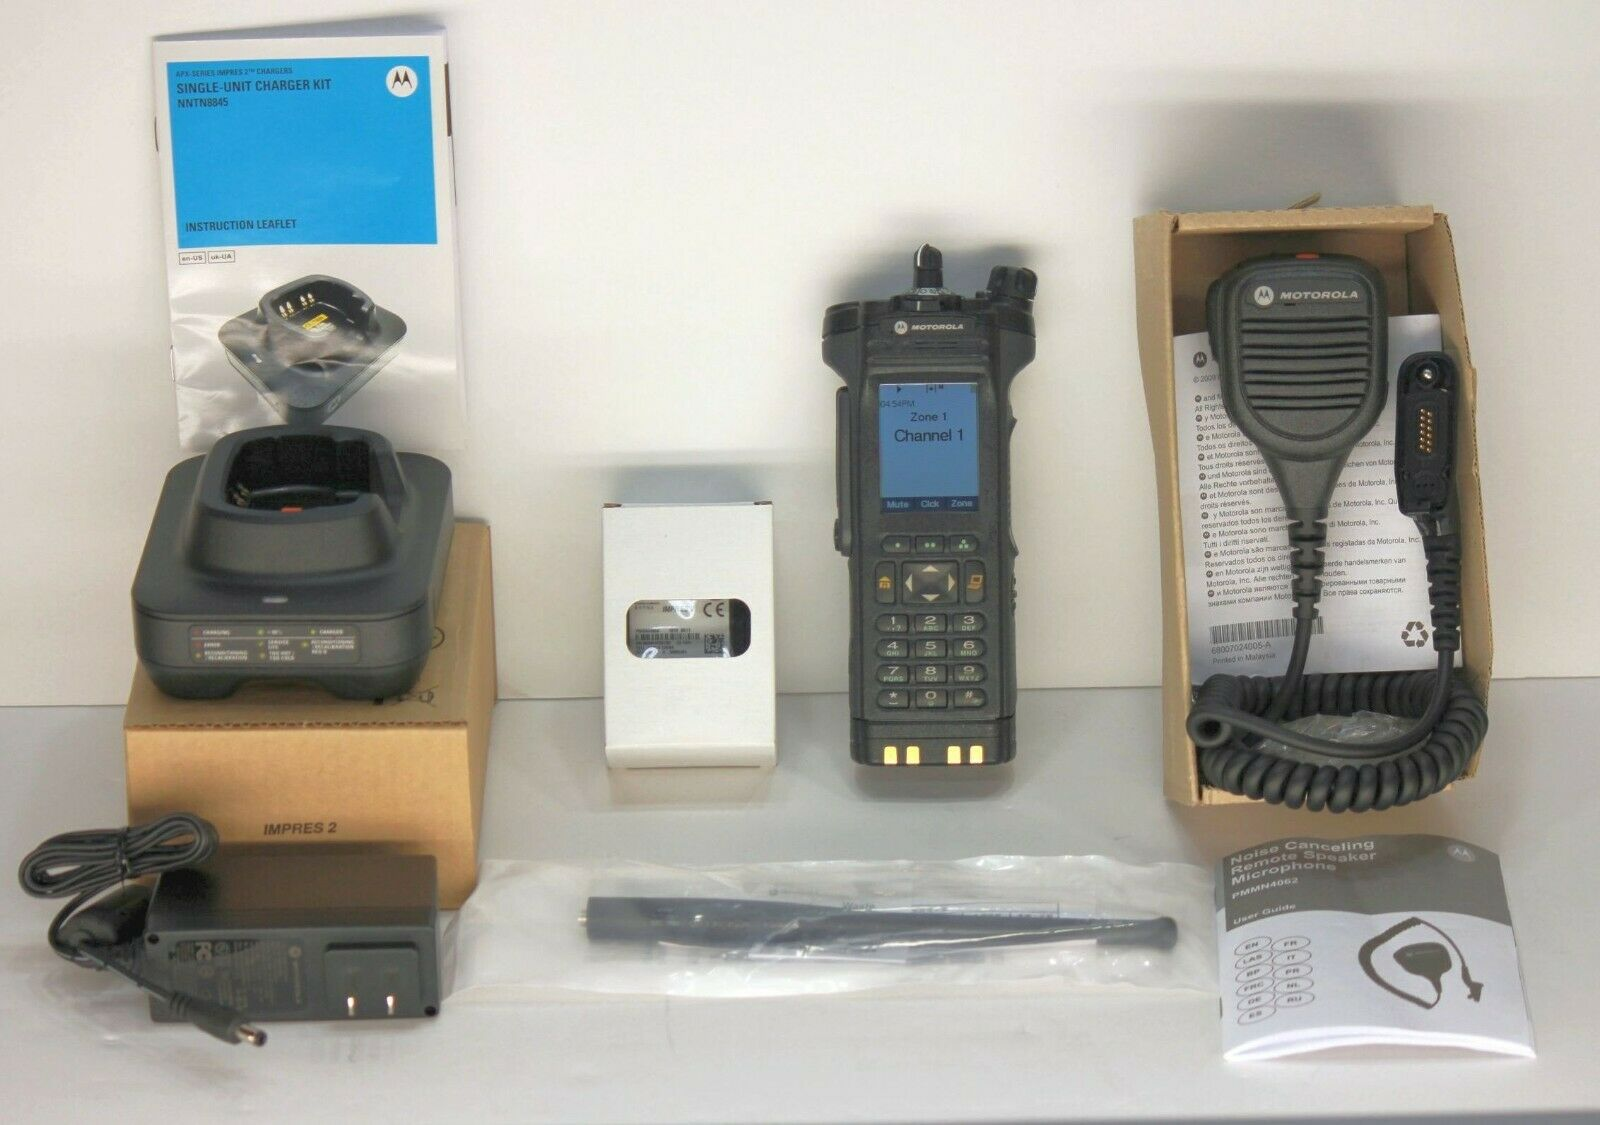 TESTED MOTOROLA APX7000 3.5  700/800 VHF 136-174 MHZ DIGITAL RADIO P25 TDMA FPP. Available Now for 2799.99